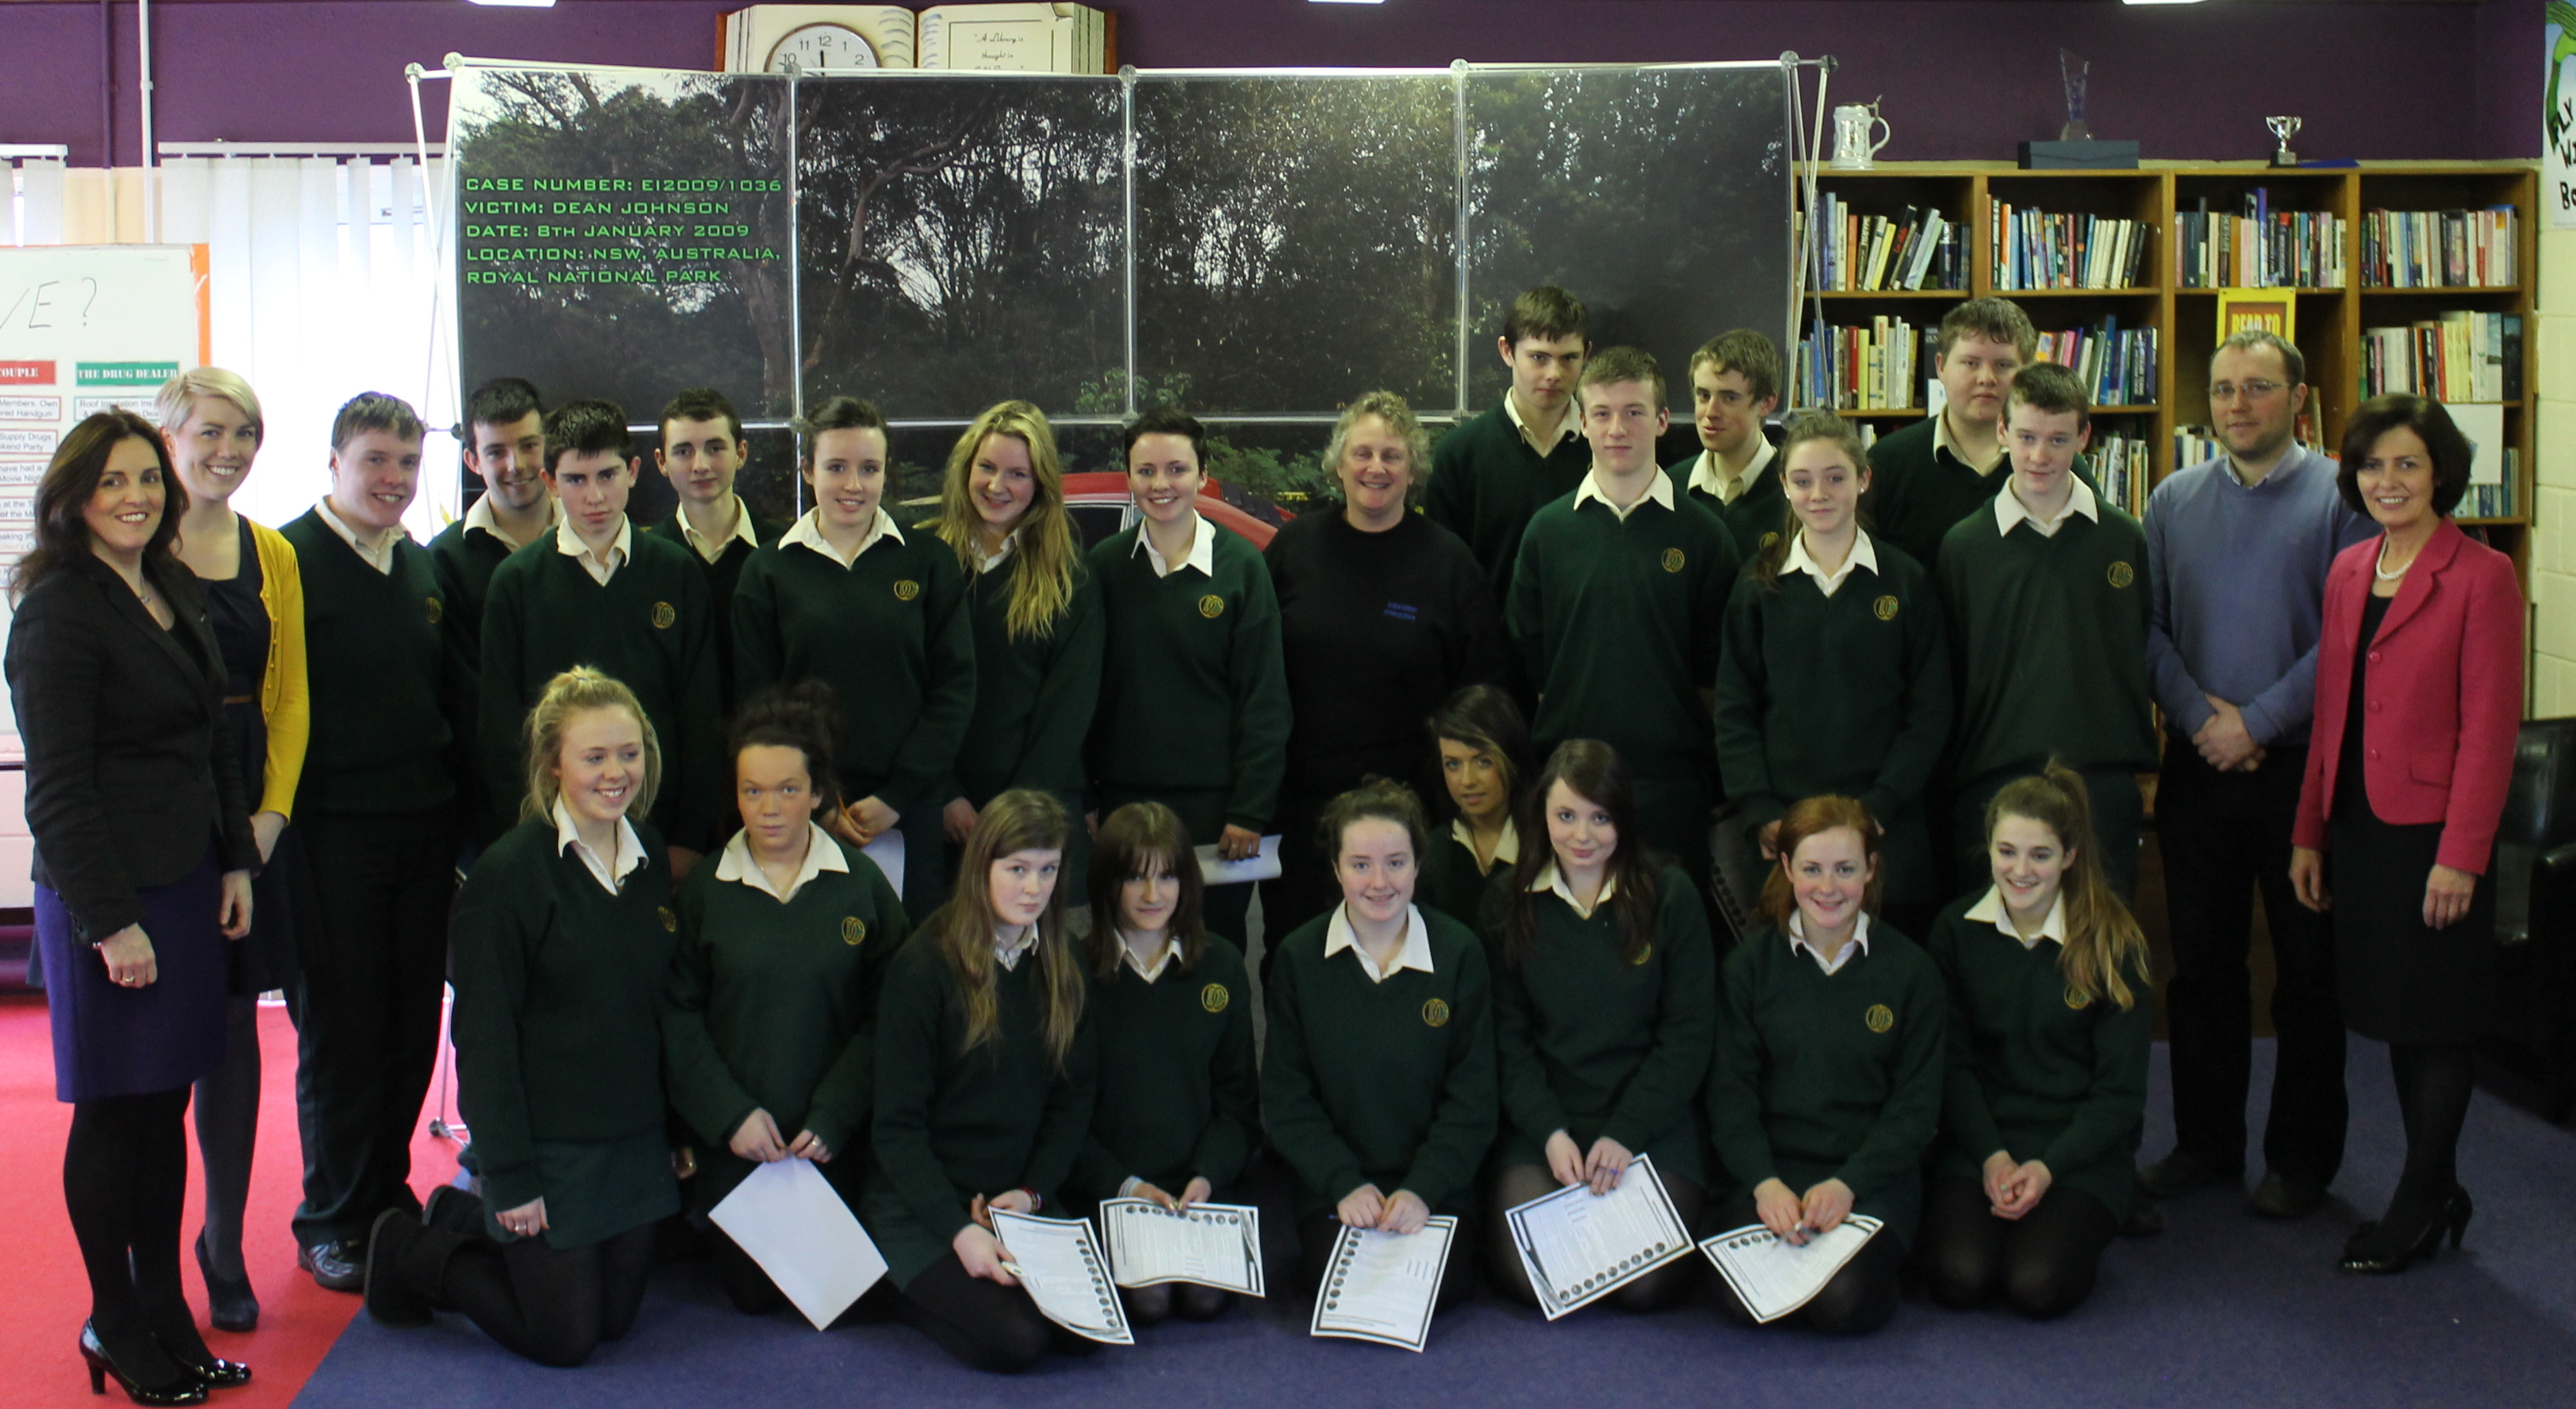 Pictured at the Forensic Science Workshop are Ms. Bernie Rowland, Principal, Davitt College; Ms. Alison Leck, Forensic Scientist; Davitt College Science Teachers and Transition Year students.